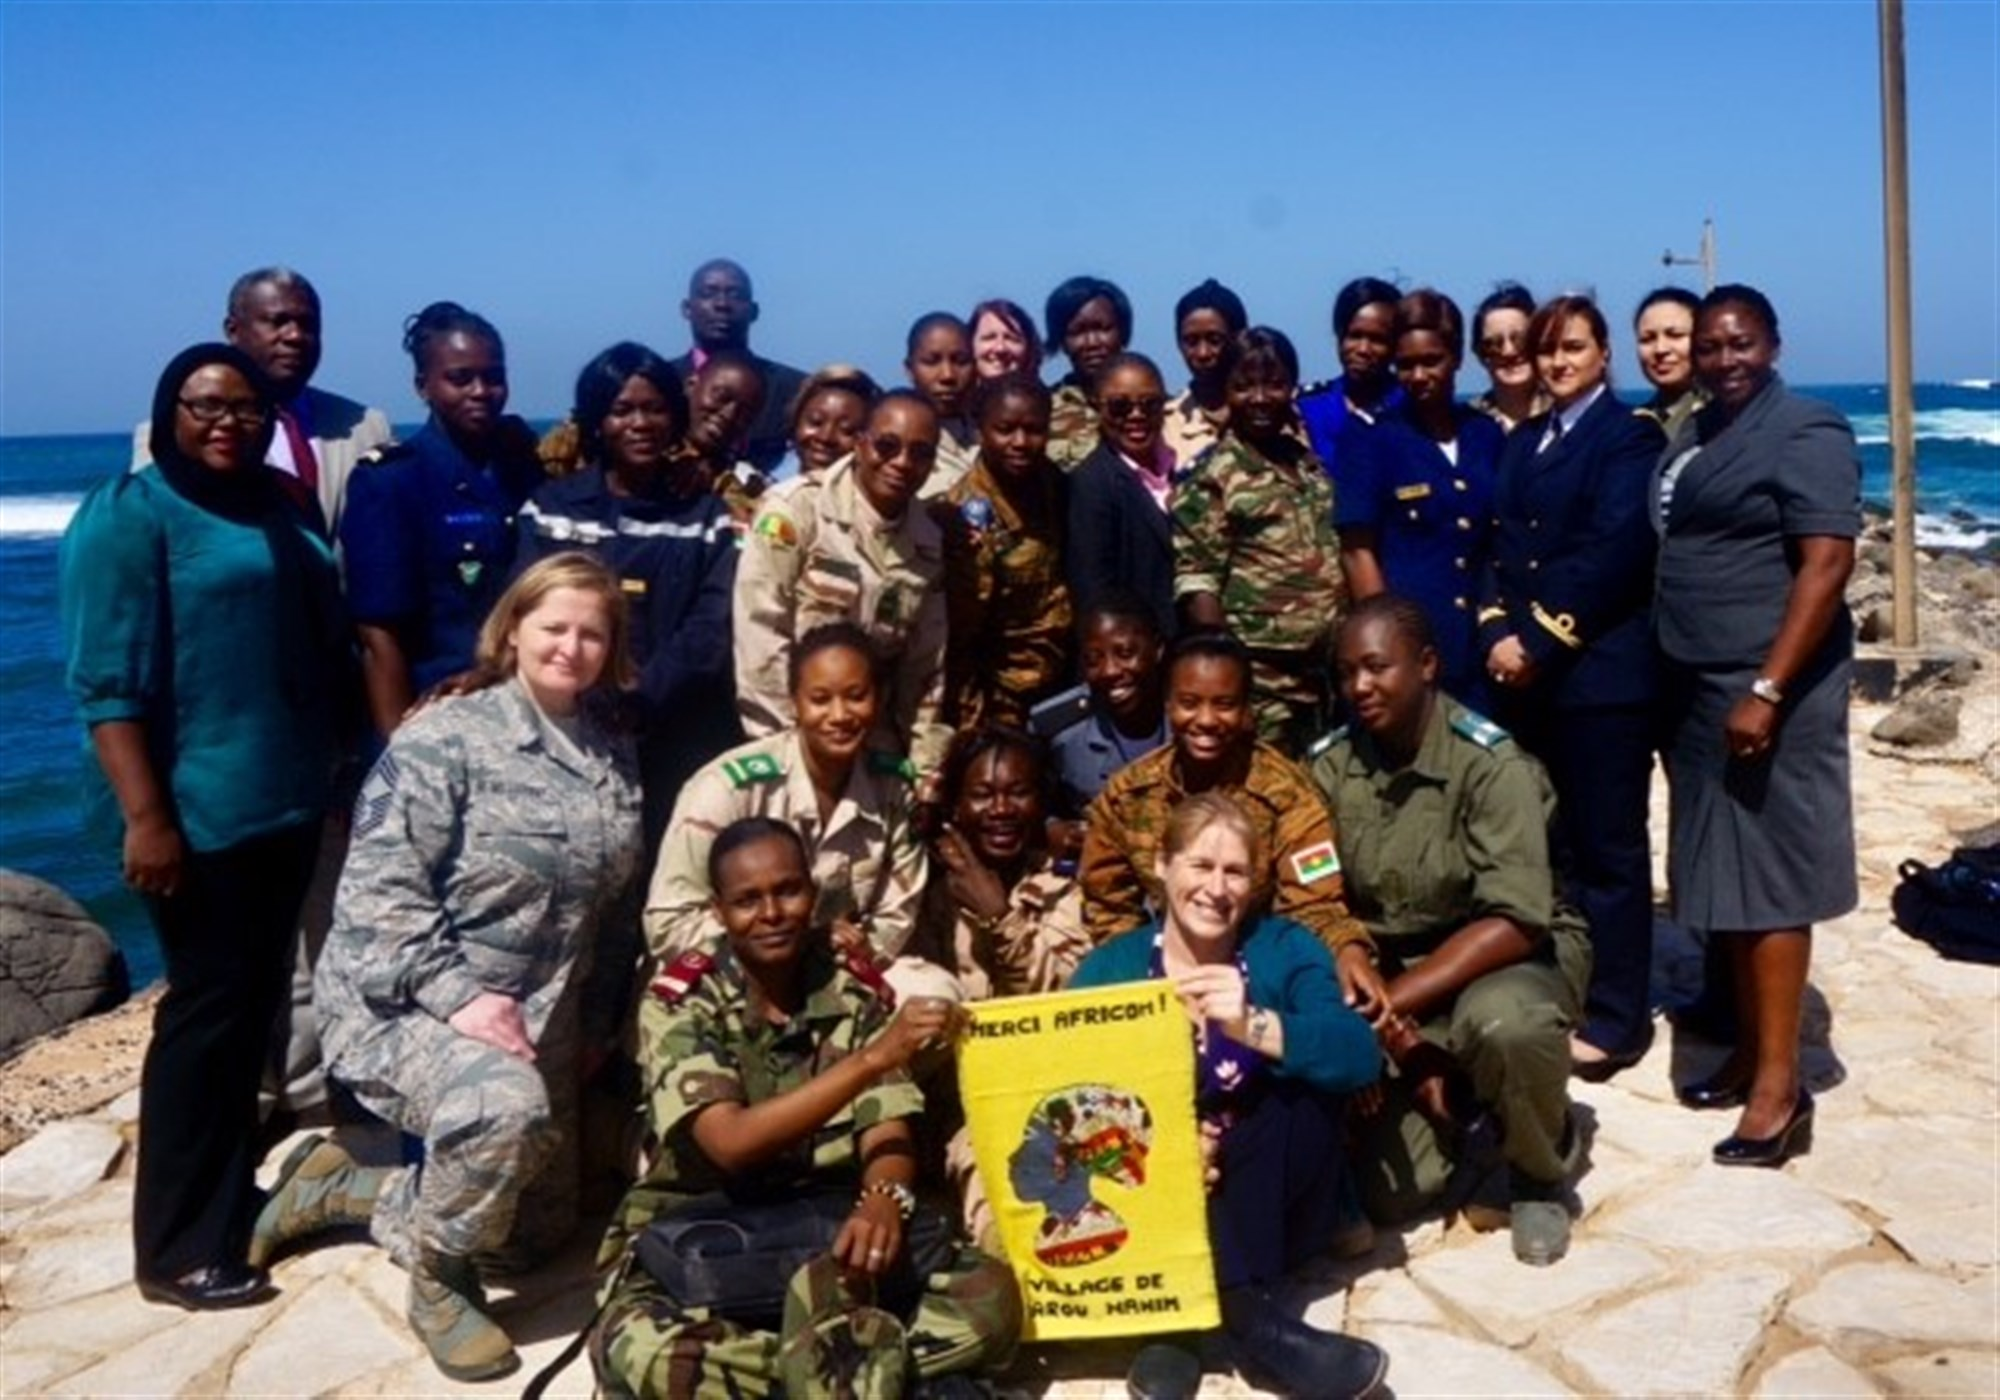 Students and instructors from the U.S. Africa Command's Intelligence Directorate (J2) regional all-female Military Intelligence Professionals Course pose for a group photo during a visit to a local village where they learned how females have made a difference in their community.